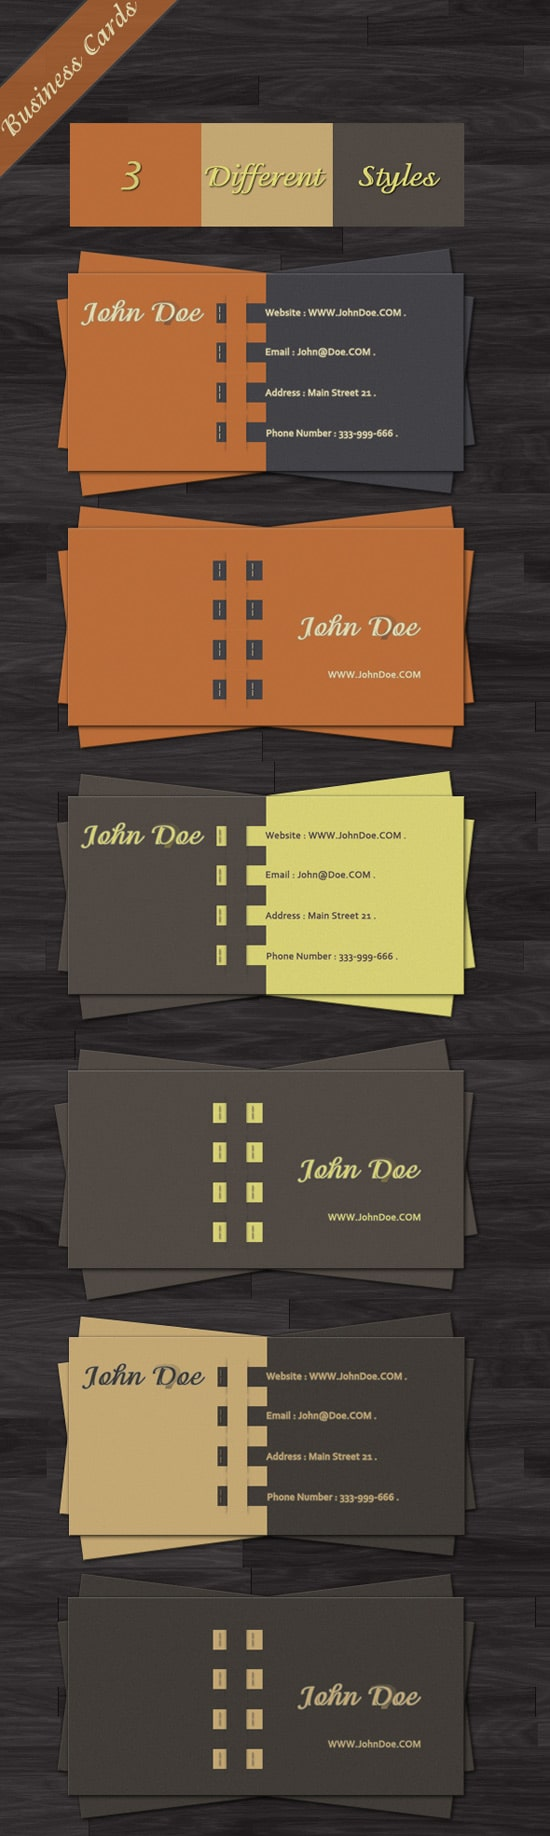 100 free business card templates designrfix business is business free psd vector business card accmission Choice Image